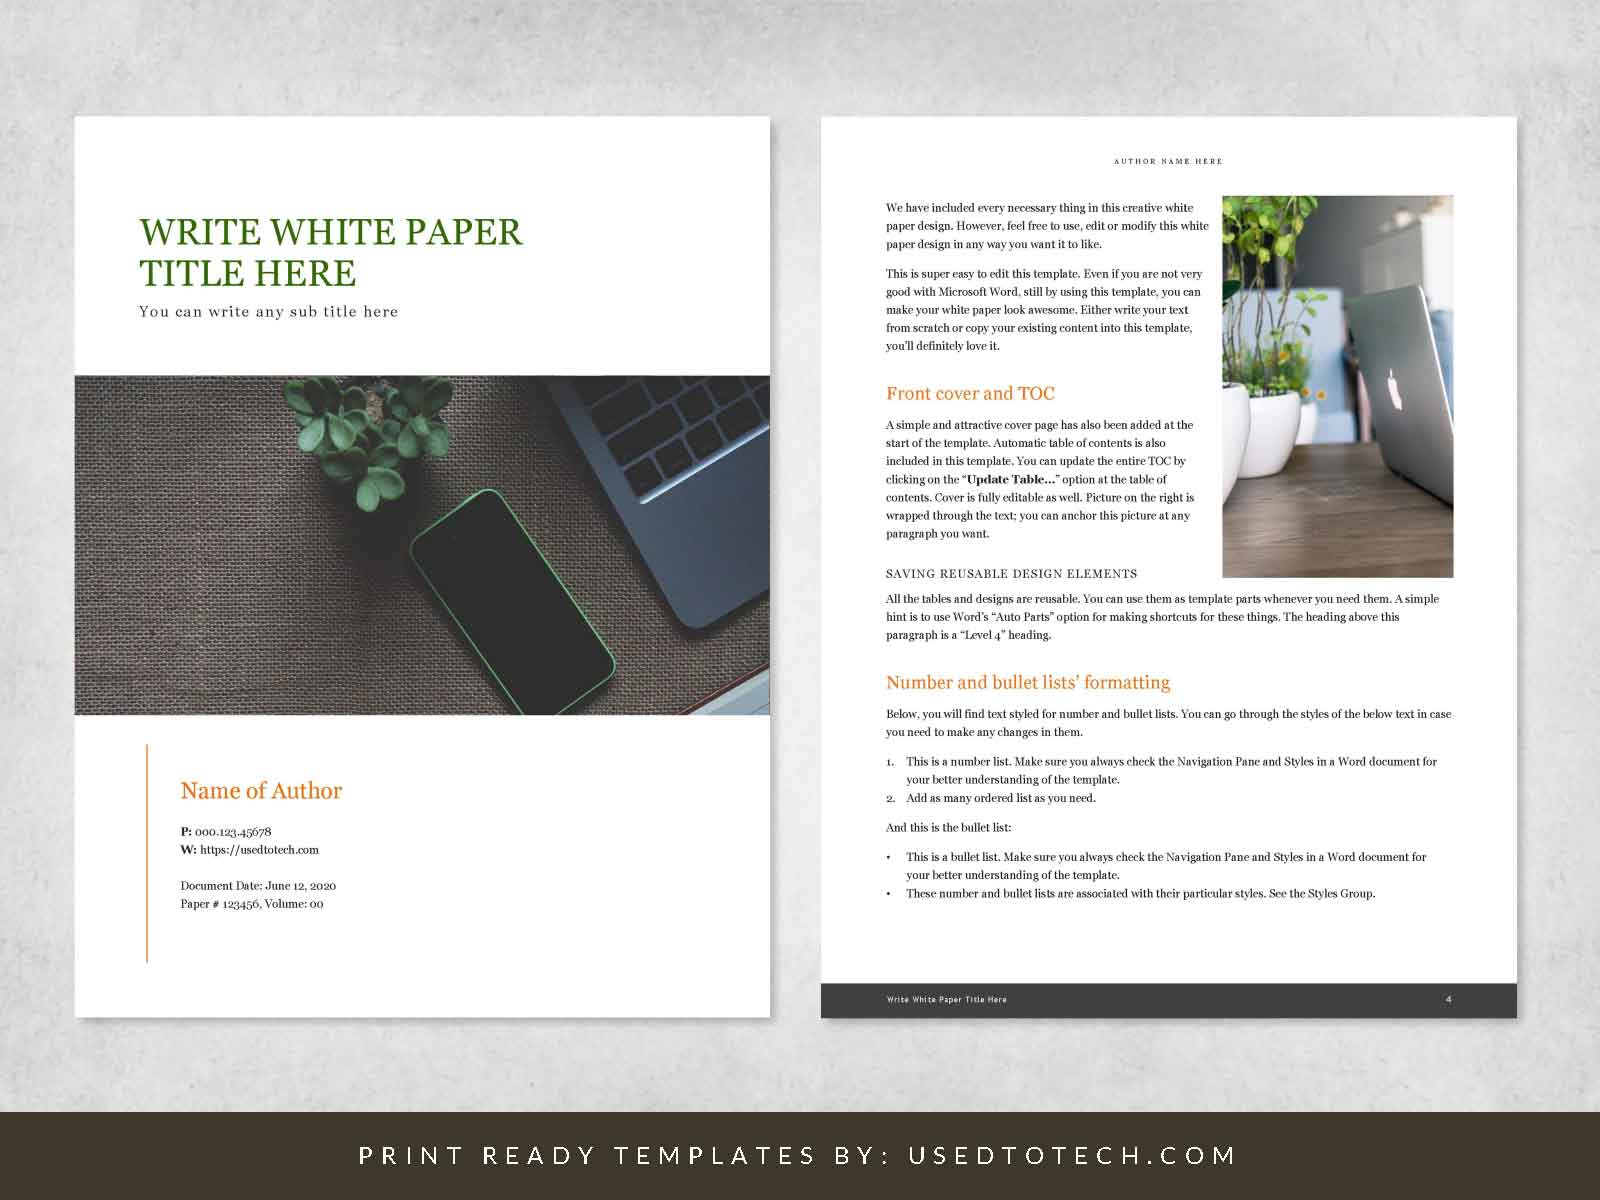 Creative white paper design for Word